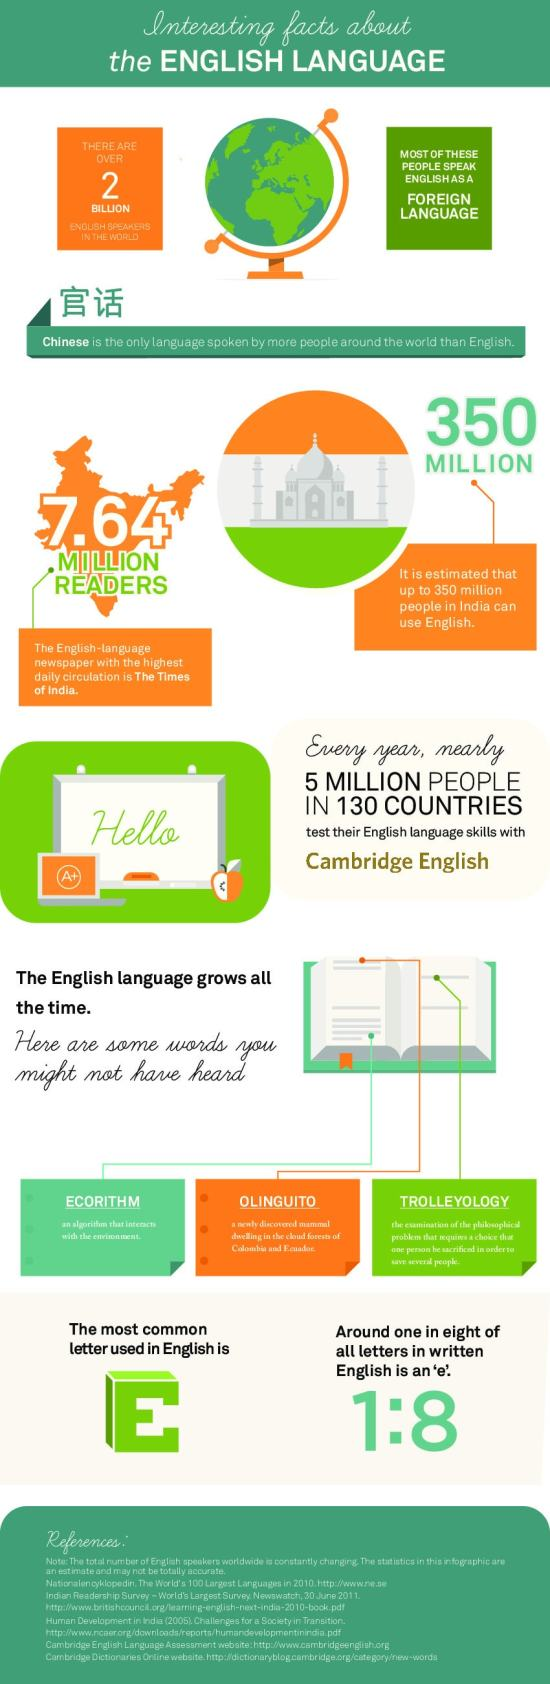 Interesting-facts-about-the-English-language-infographic